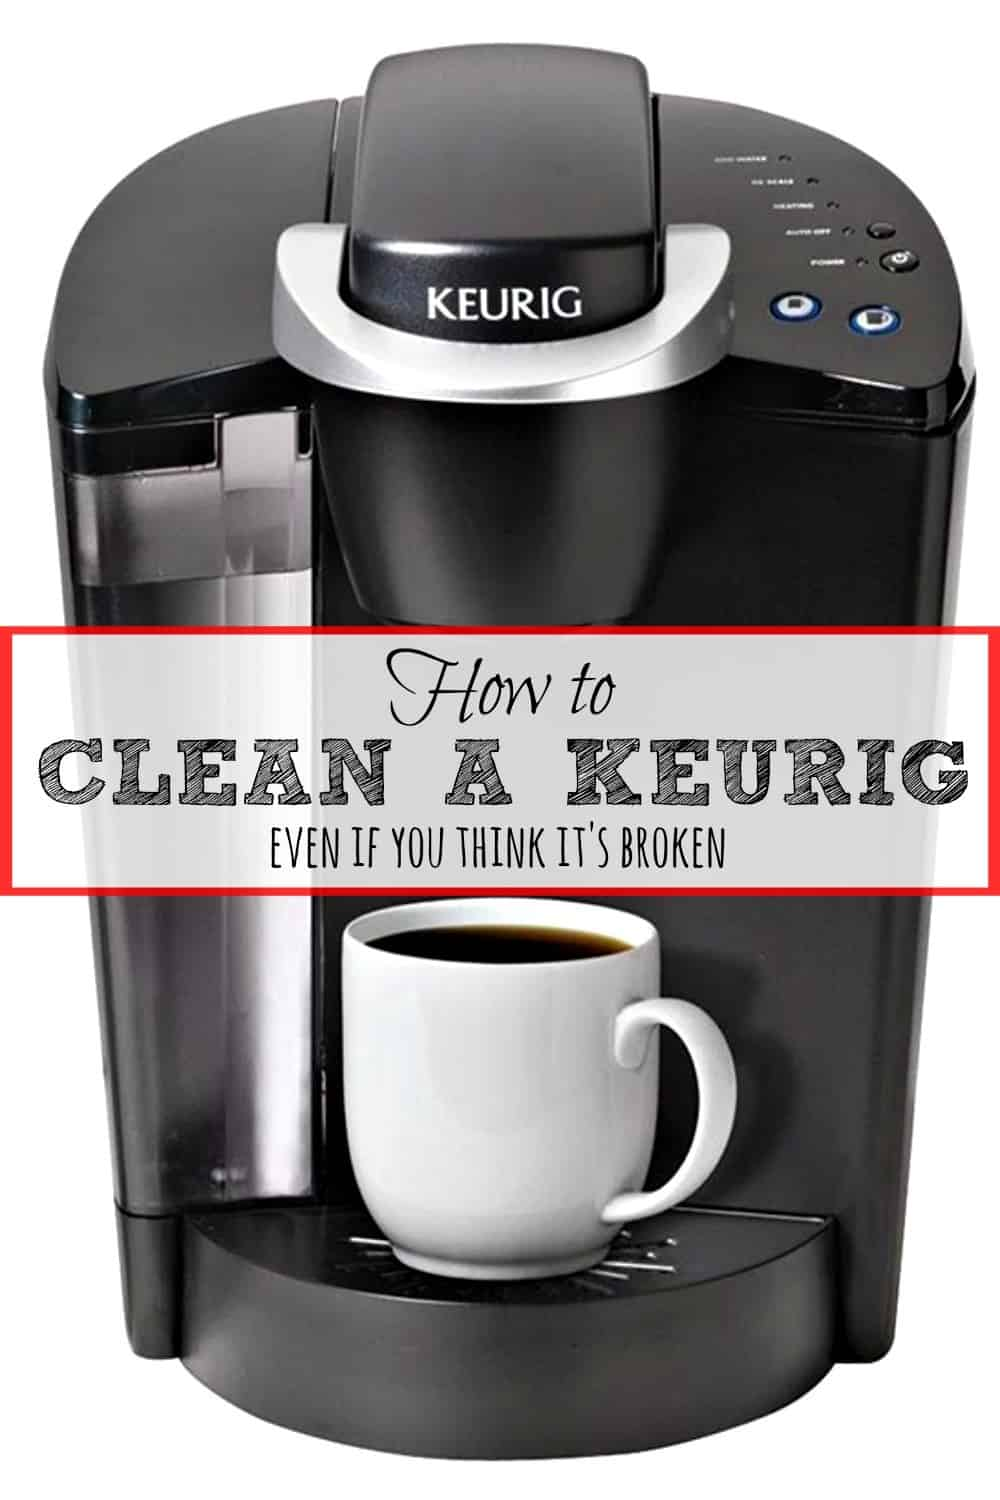 How to clean a Keurig - My Keurig was barely working, then I did this!